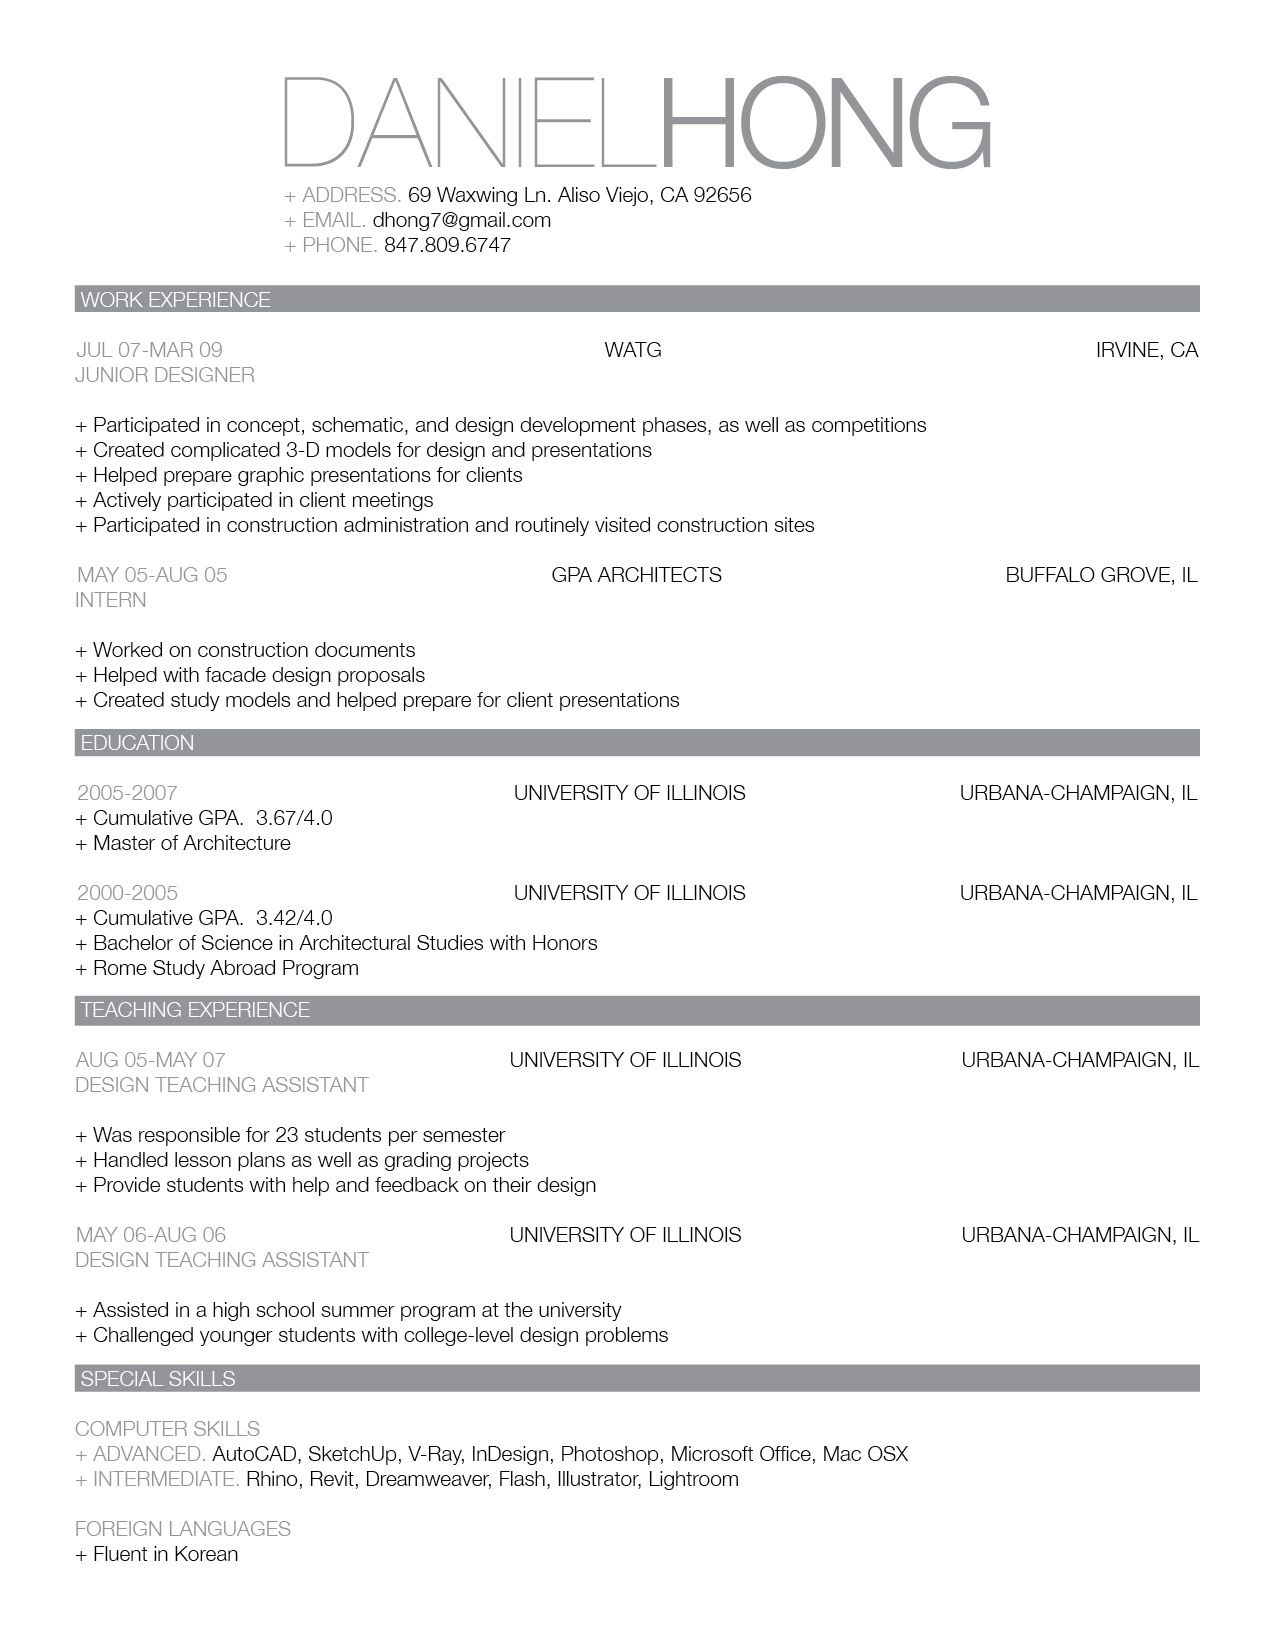 updated cv and work sample - Updated Resume